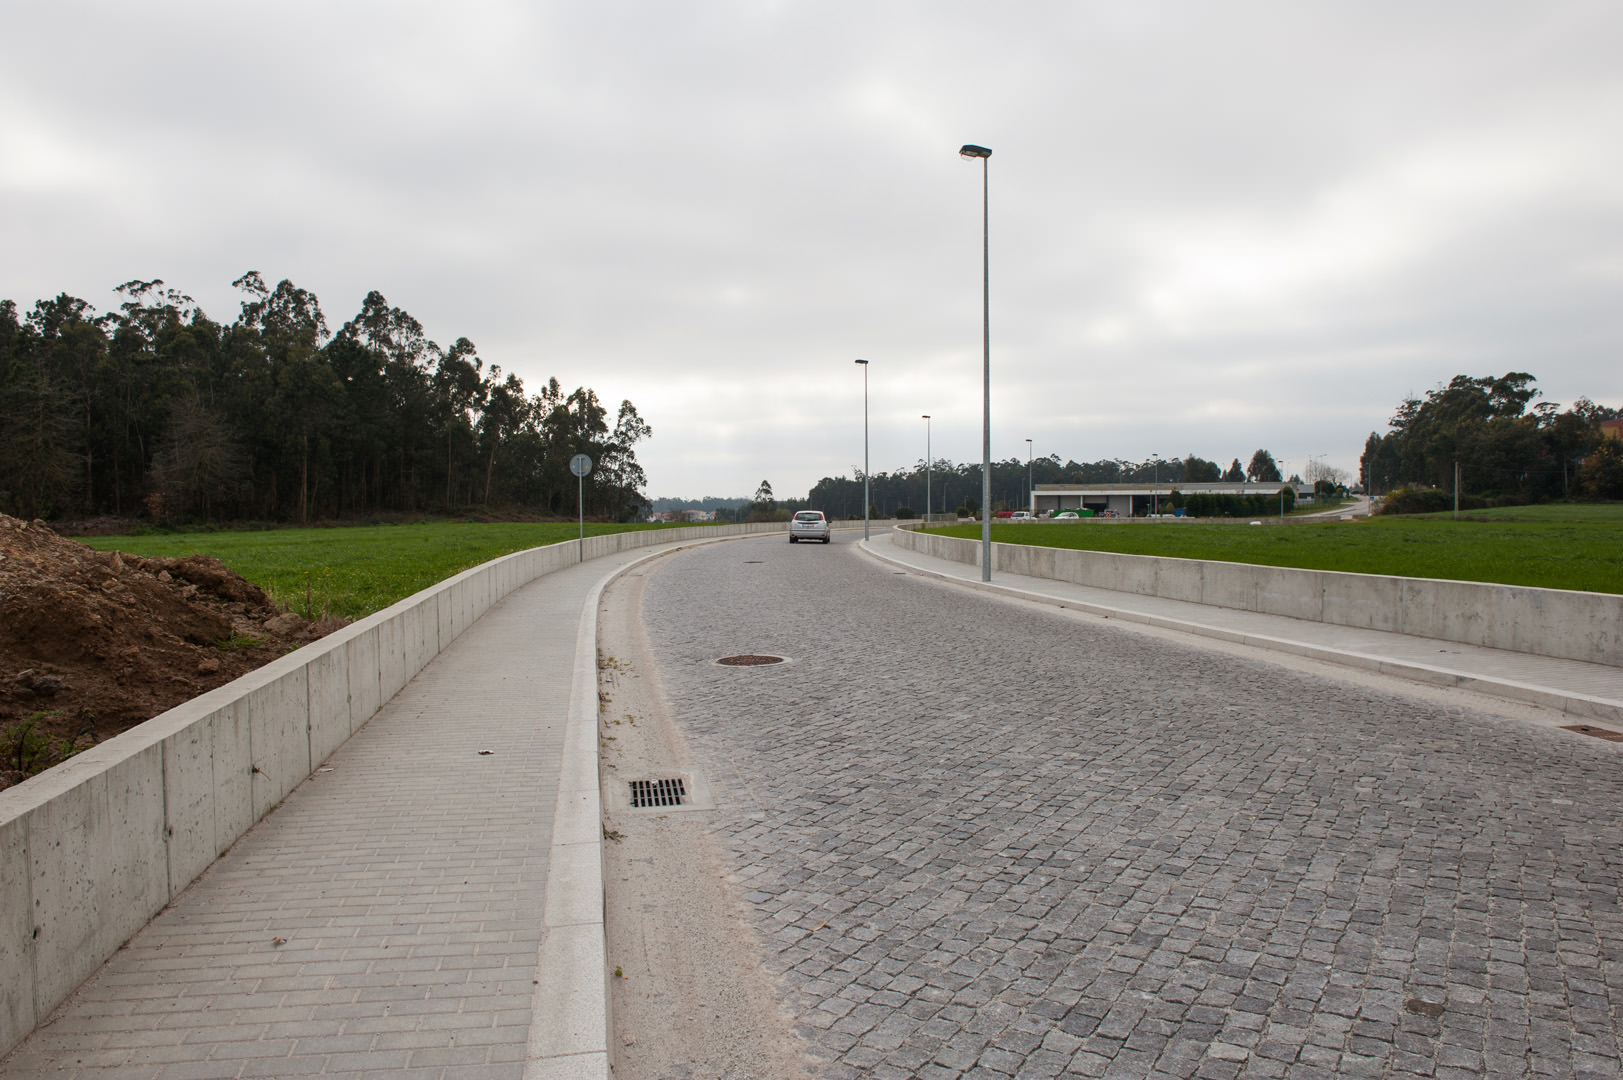 Extension of RLIP area and Nova Rua da Cruz